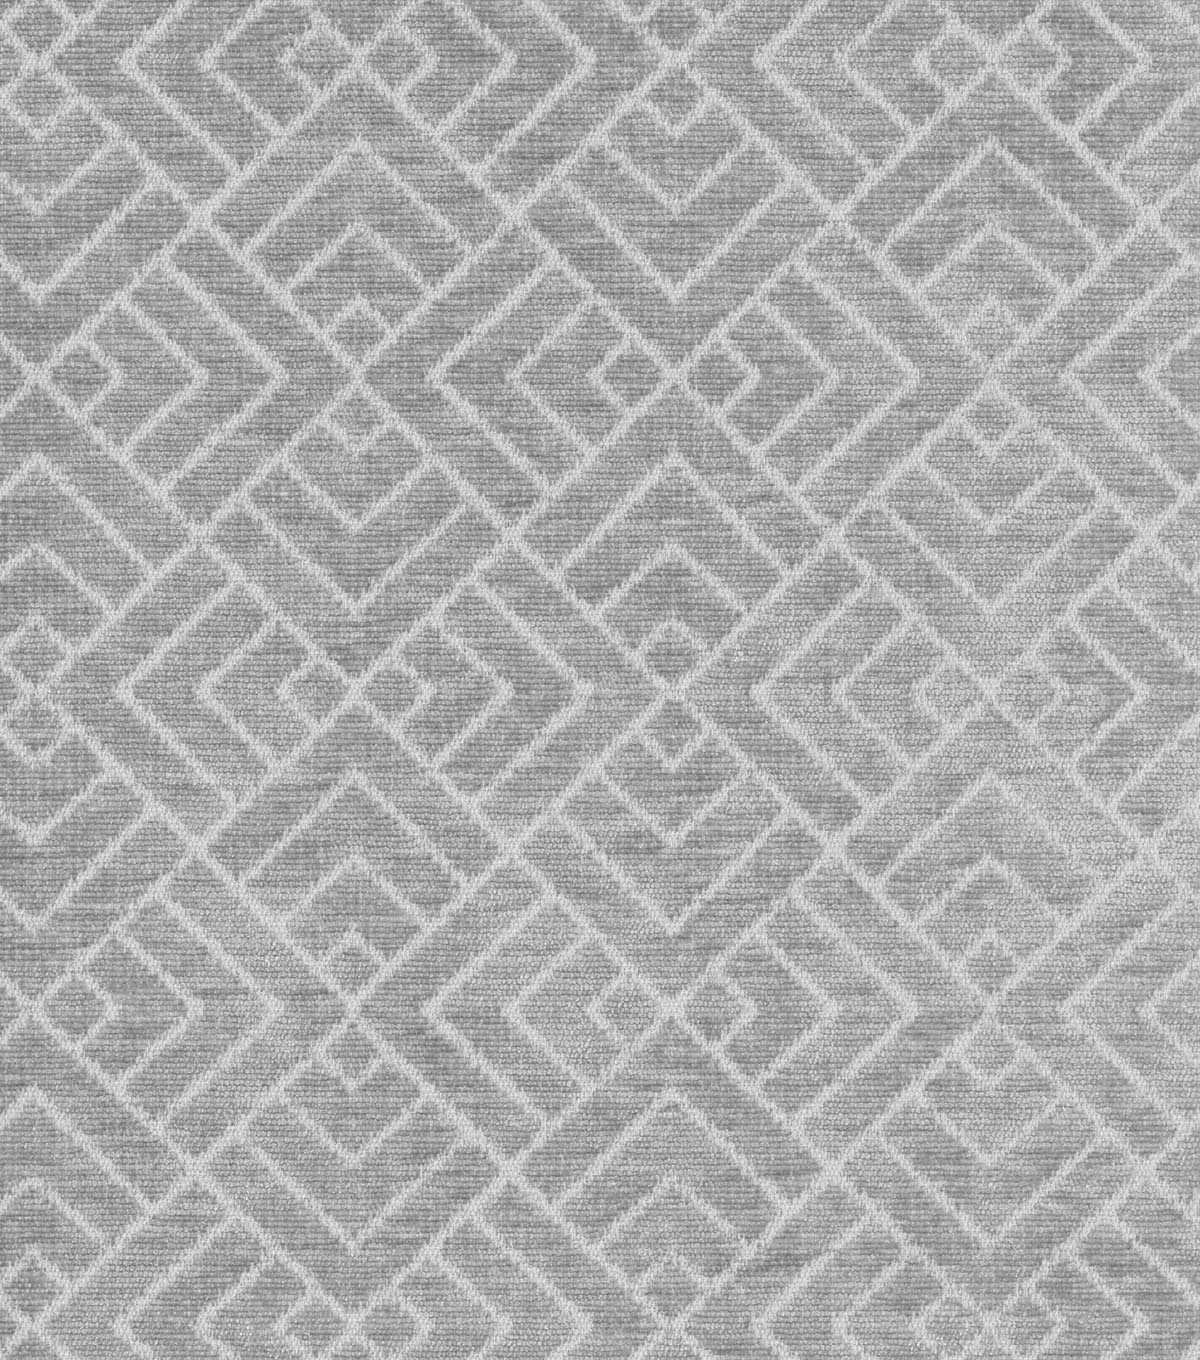 Home Decor 8\u0022x8\u0022 Swatch Fabric-IMAN Home Tambal Lattice Shale